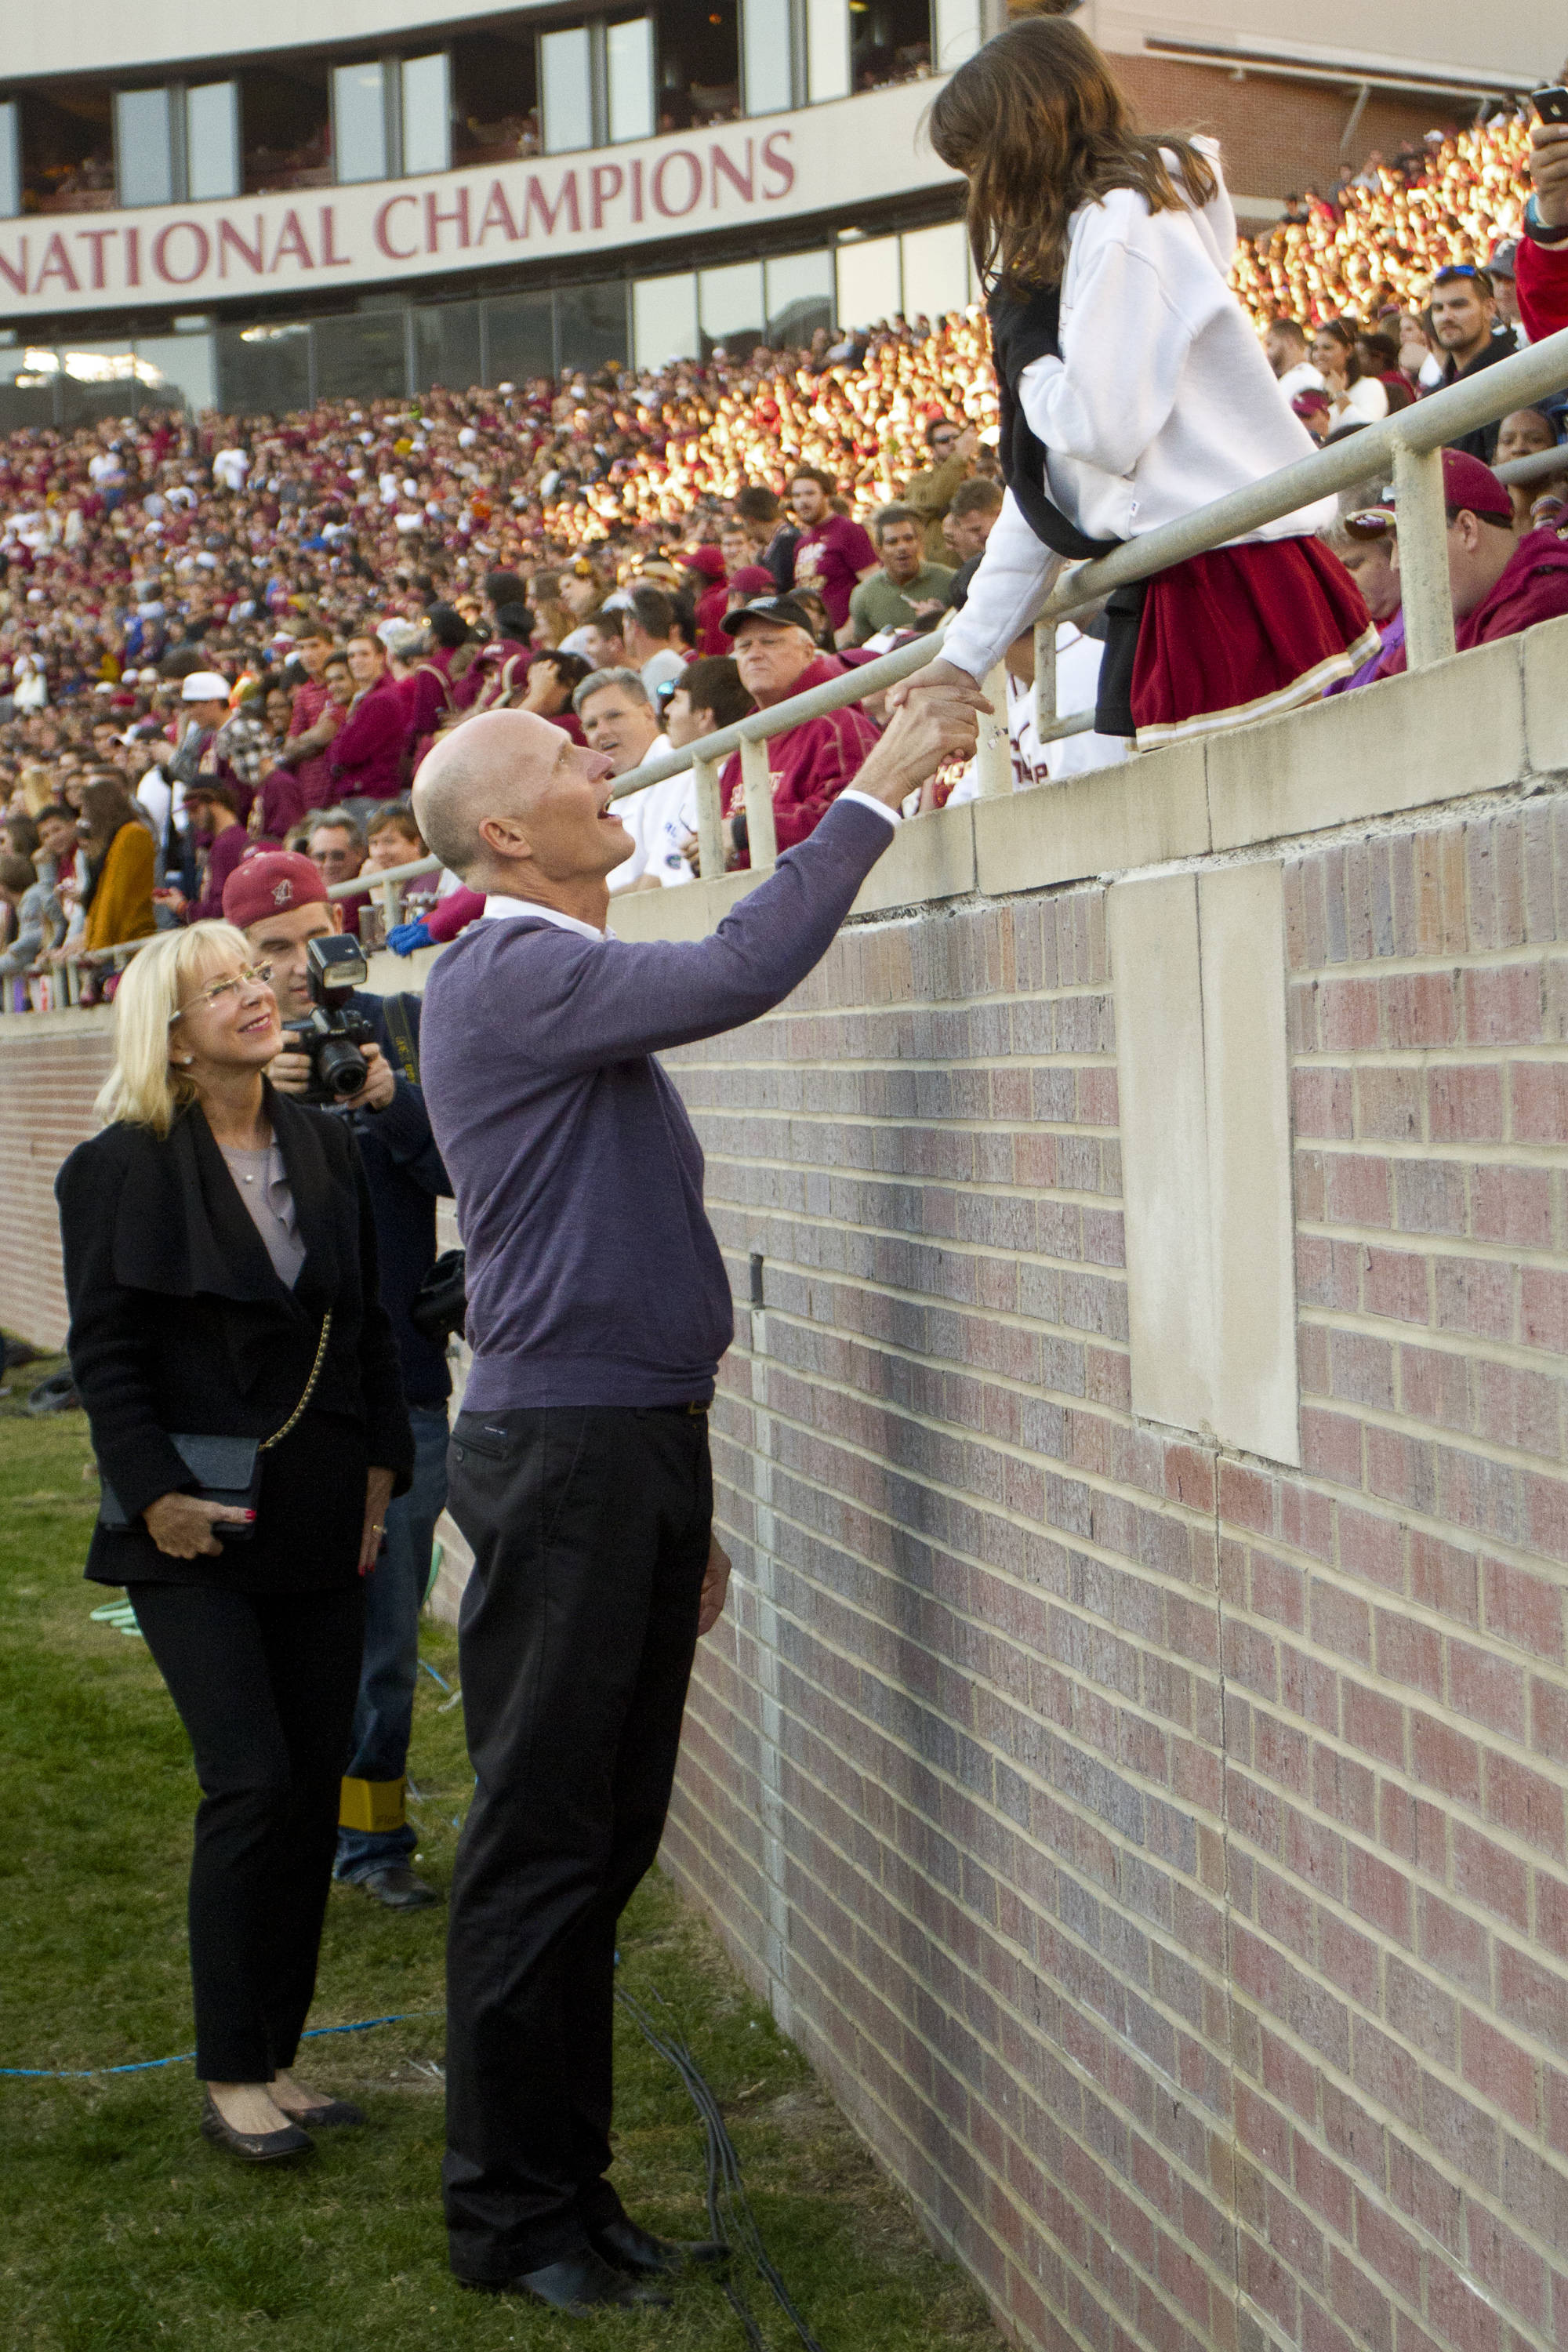 Florida's governor Rick Scott greets a fan during FSU Football's game against UF on Saturday, November 24, 2012 in Tallahassee, Fla.